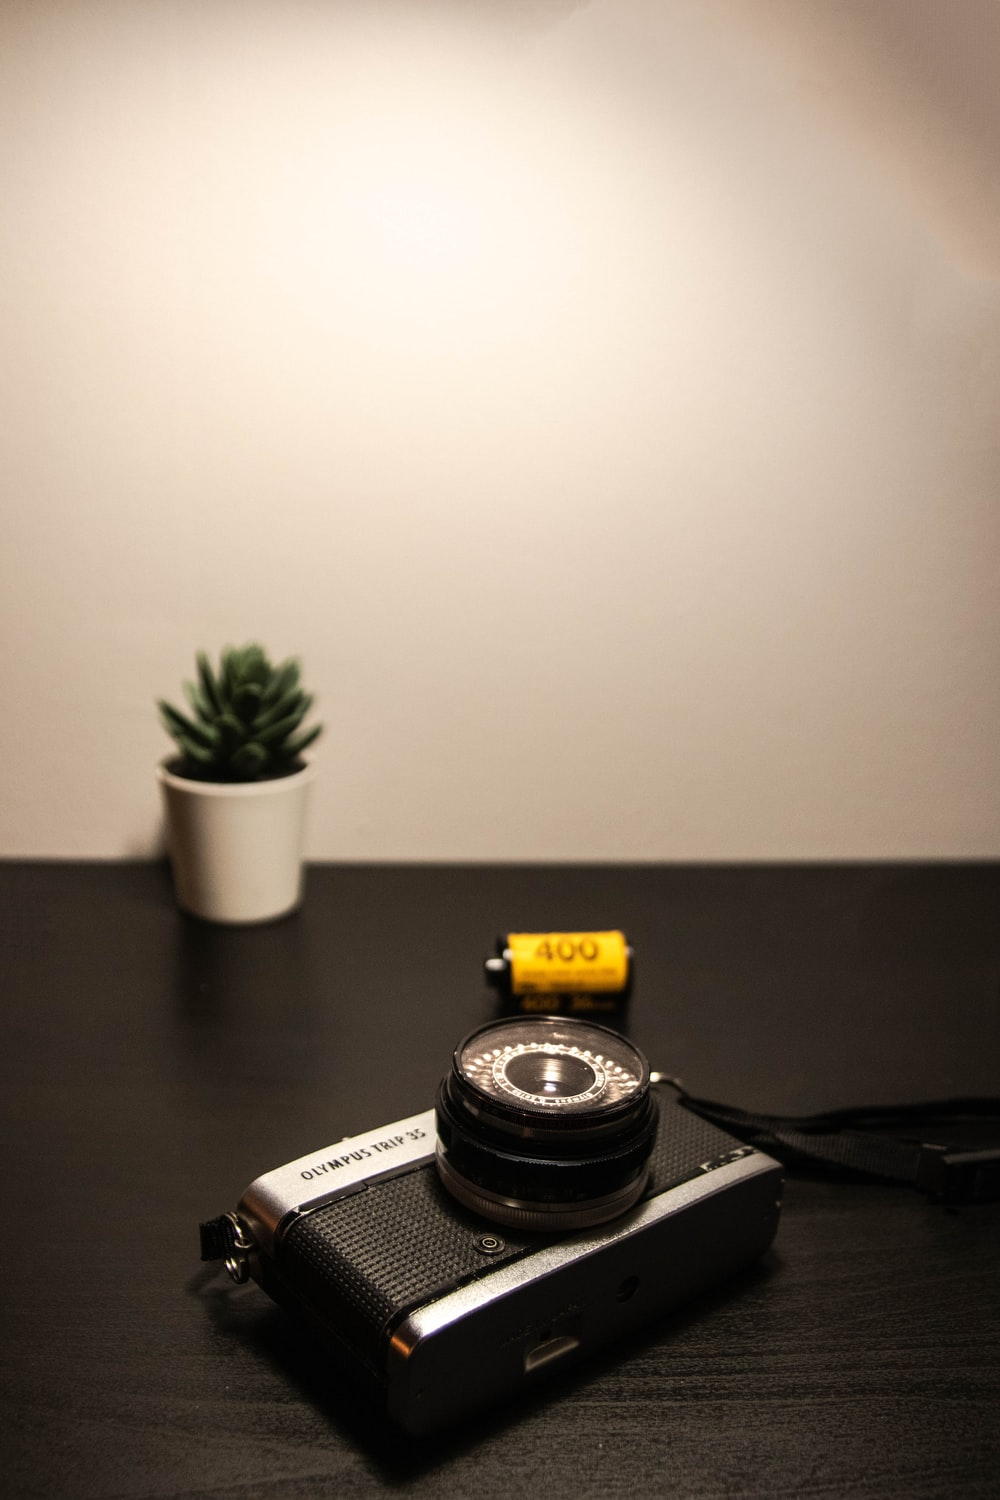 black camera on table